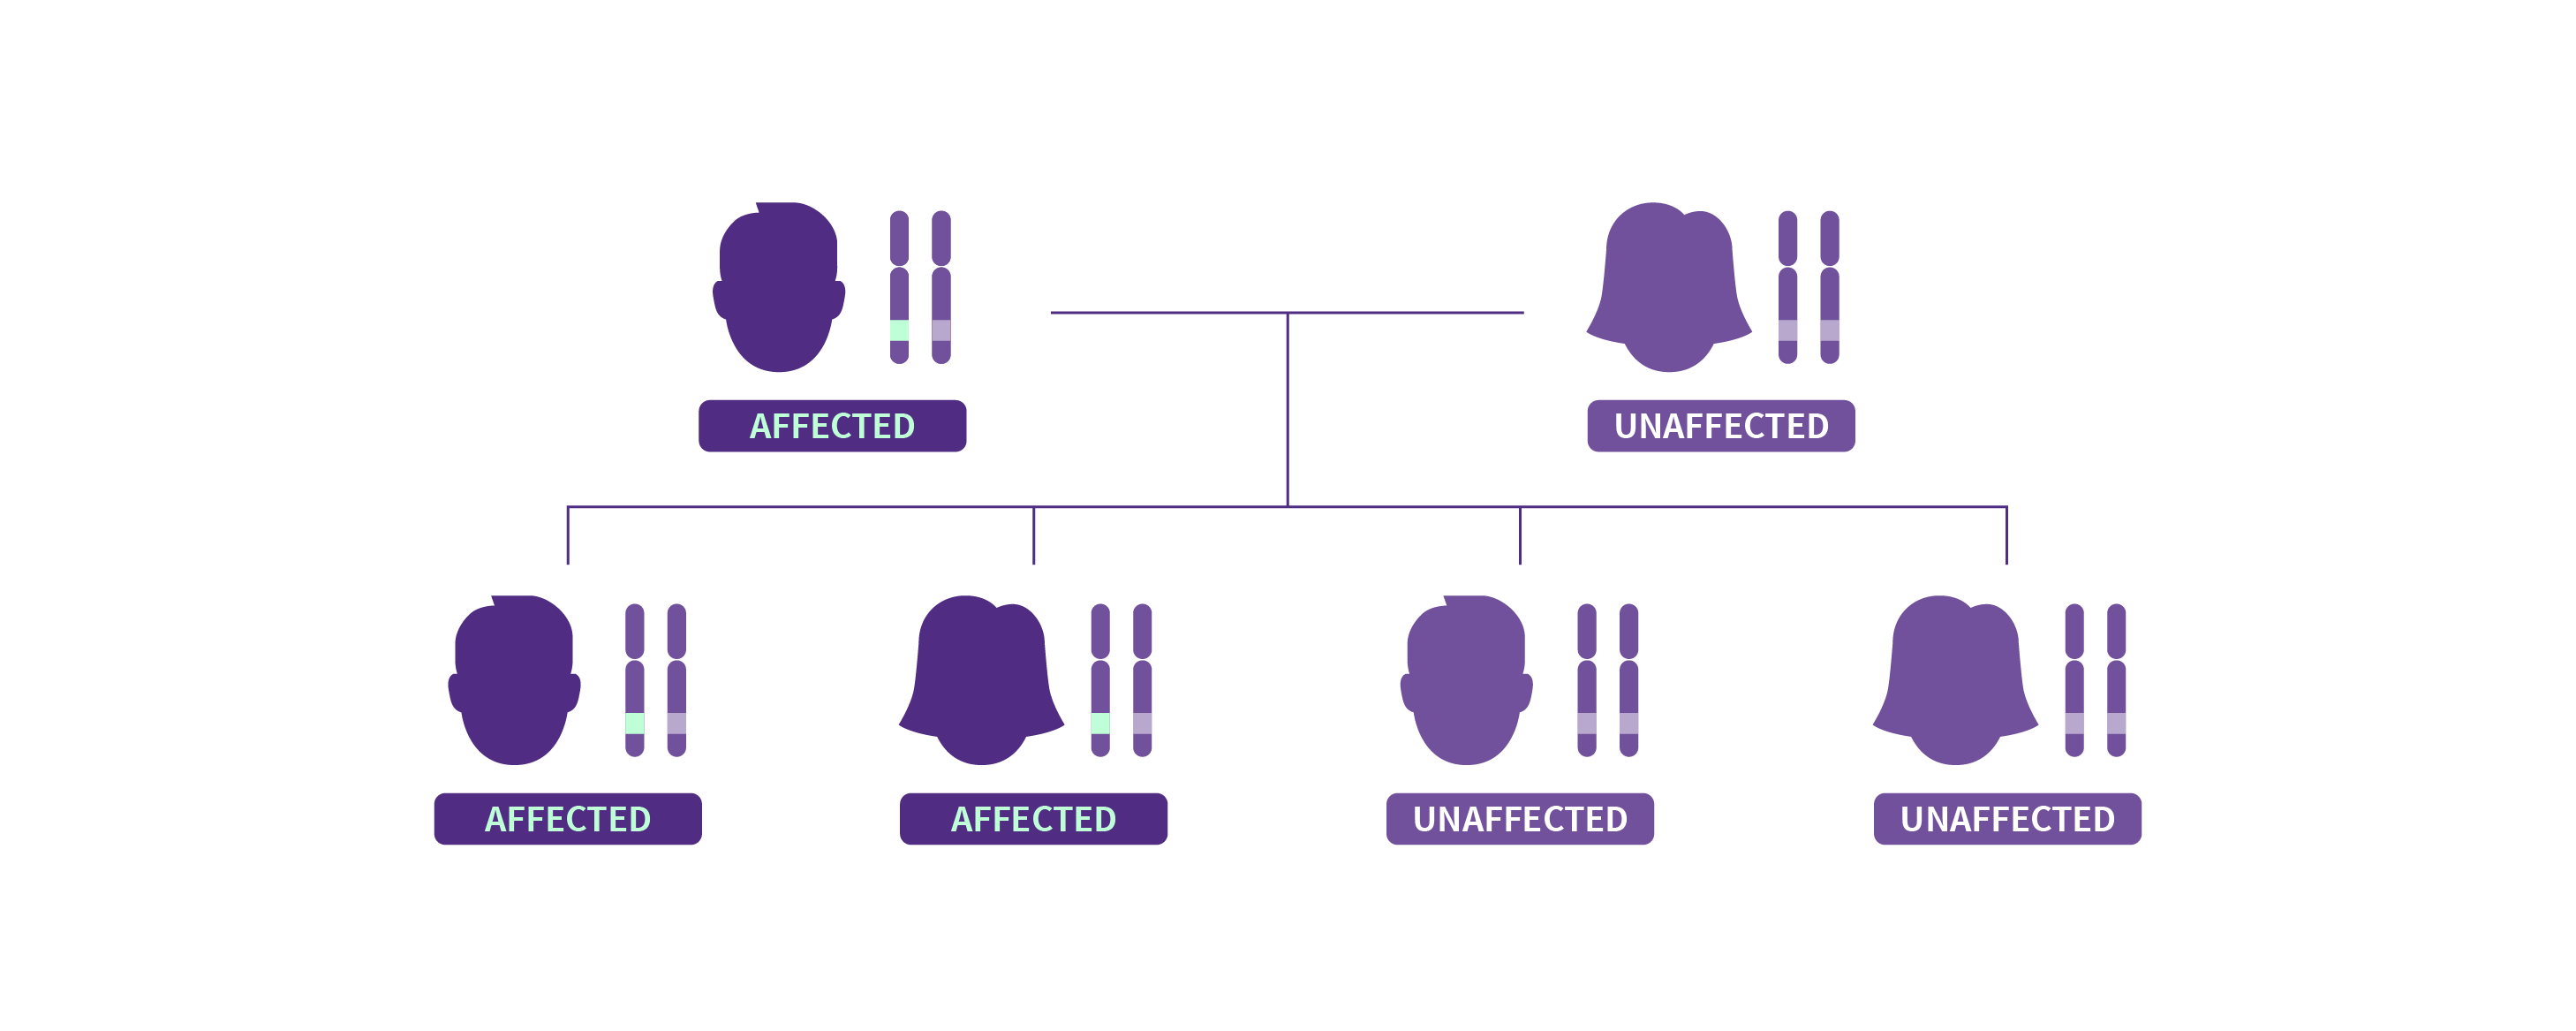 A family tree showing autosomal dominant inheritance pattern of Dravet syndrome.